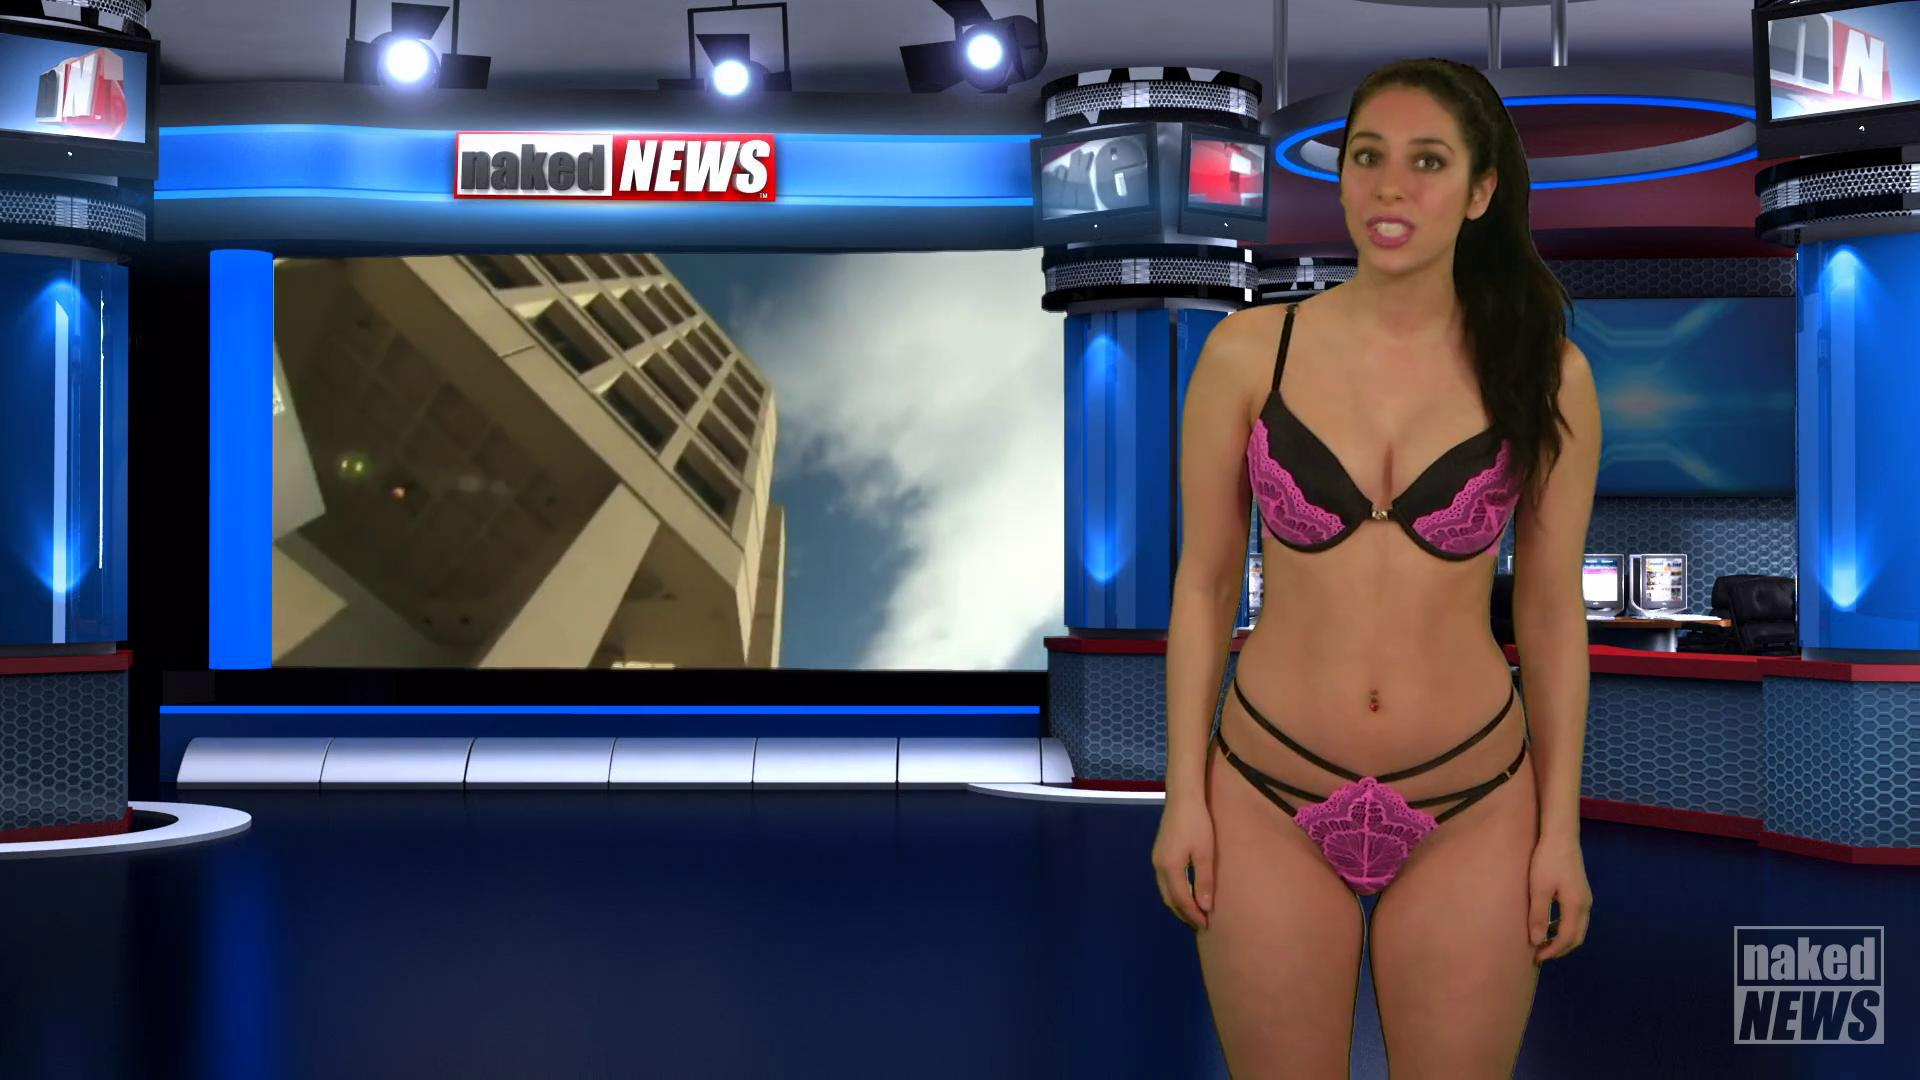 The naked news clips